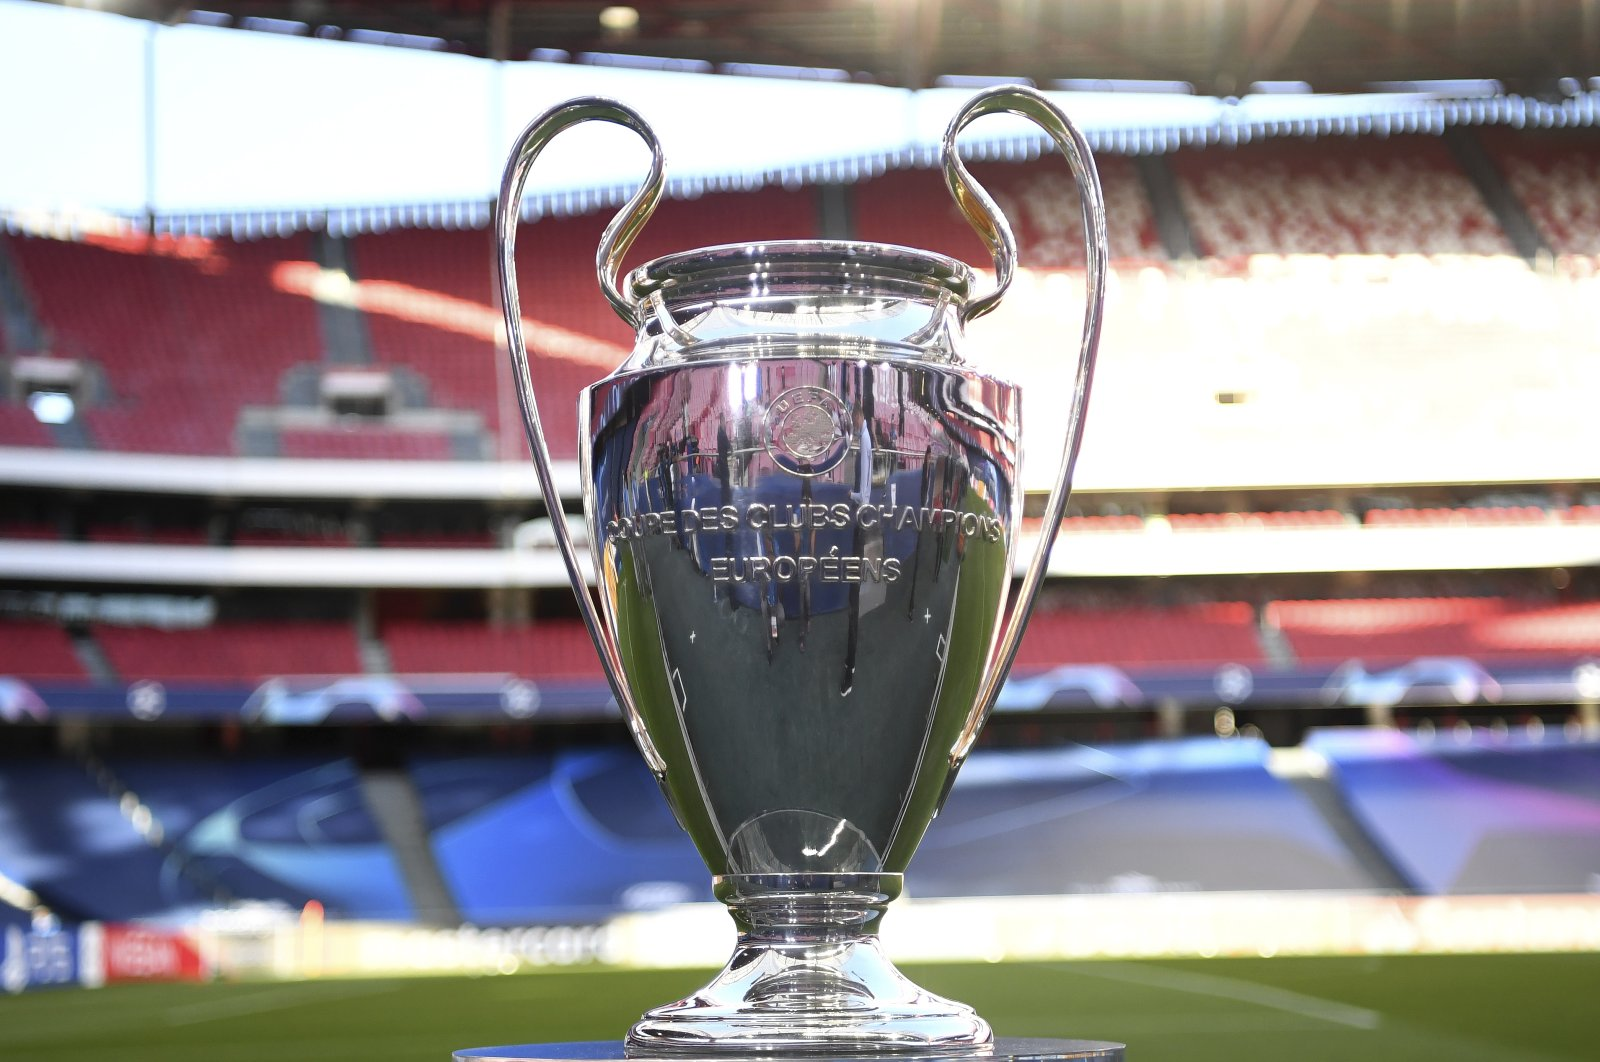 The Champions League trophy is on display before the semifinal match between Leipzig and Paris Saint-Germain (PSG) in Lisbon, Portugal, Aug. 18, 2020. (AP Photo)